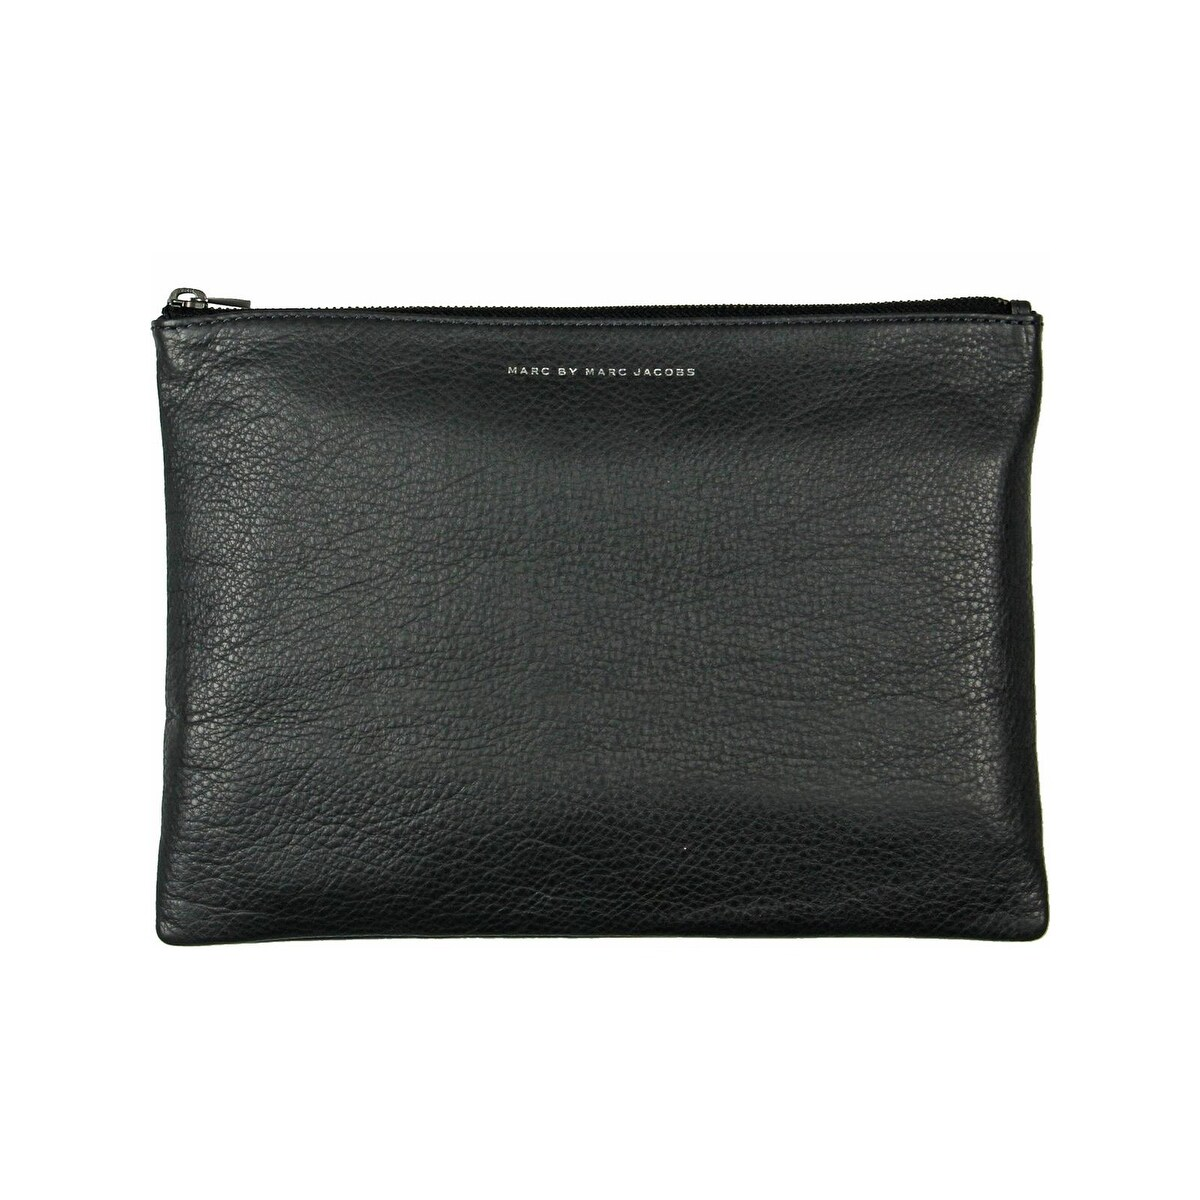 6f45e6e1dd3 Shop Marc by Marc Jacobs Clutch Handbag Leather Travel - Small - Free  Shipping Today - Overstock - 28277420